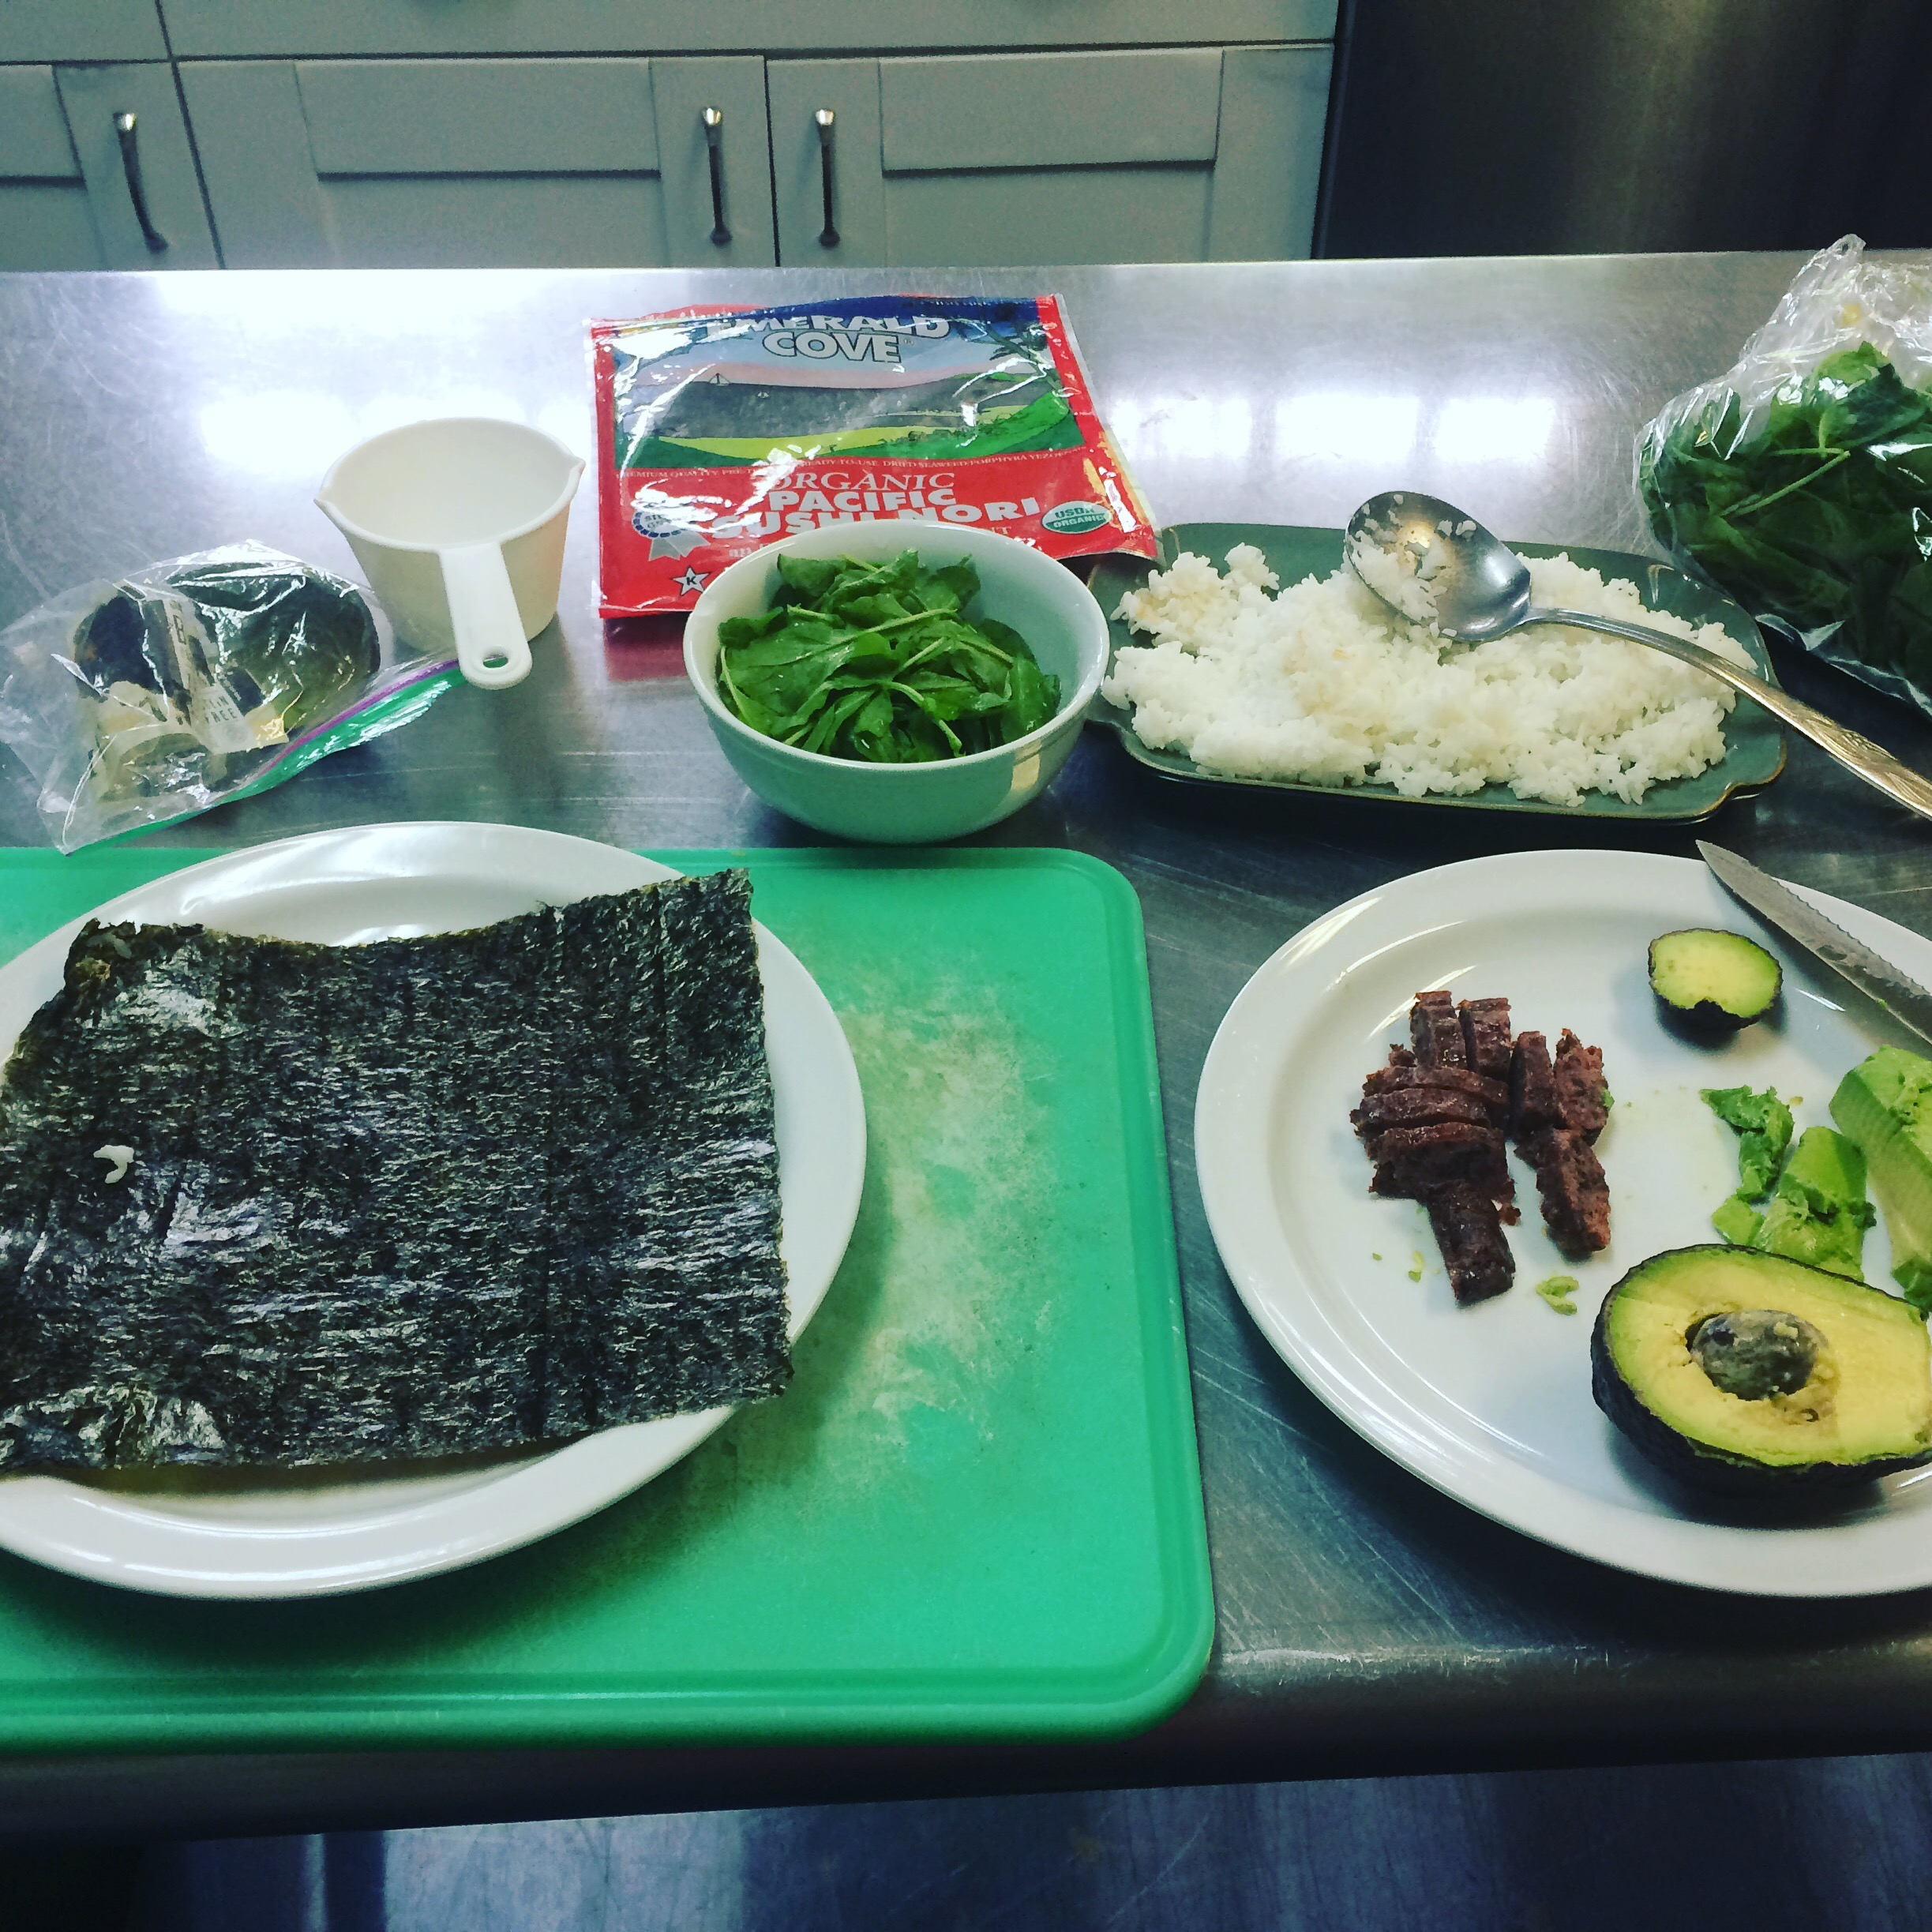 plate with seaweed, bowl with greens, white rice cooling on a plate, another plate with avocado halfves, and EPIC bar cut into smaller pieces, and a measuring cup.